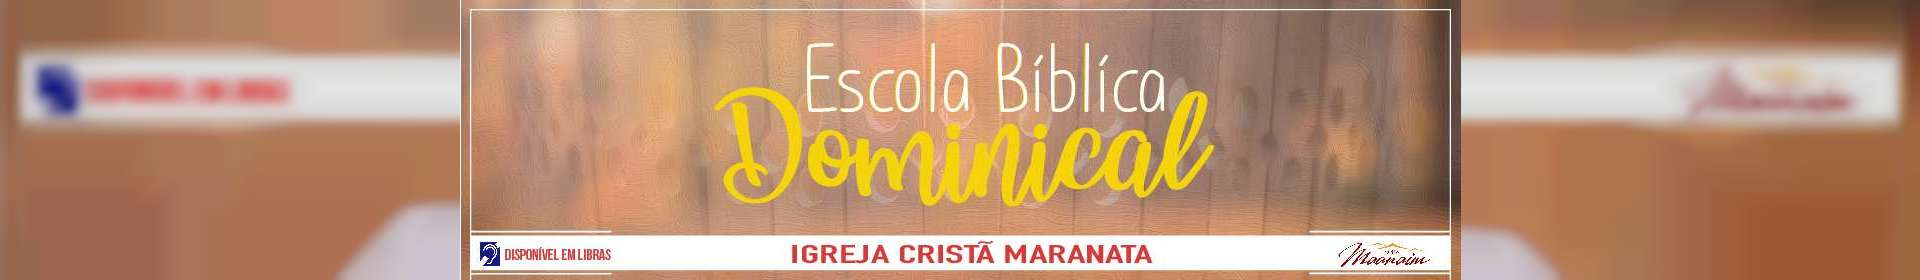 Escola Bíblica Dominical - 02/06/2019